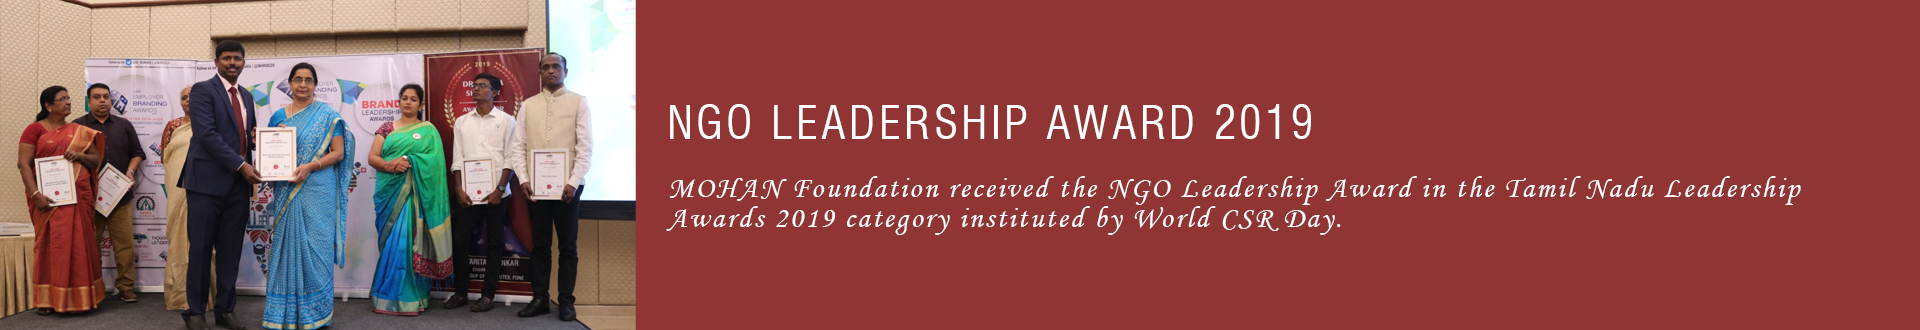 MOHAN Foundation receives the NGO Leadership Award at Chennai